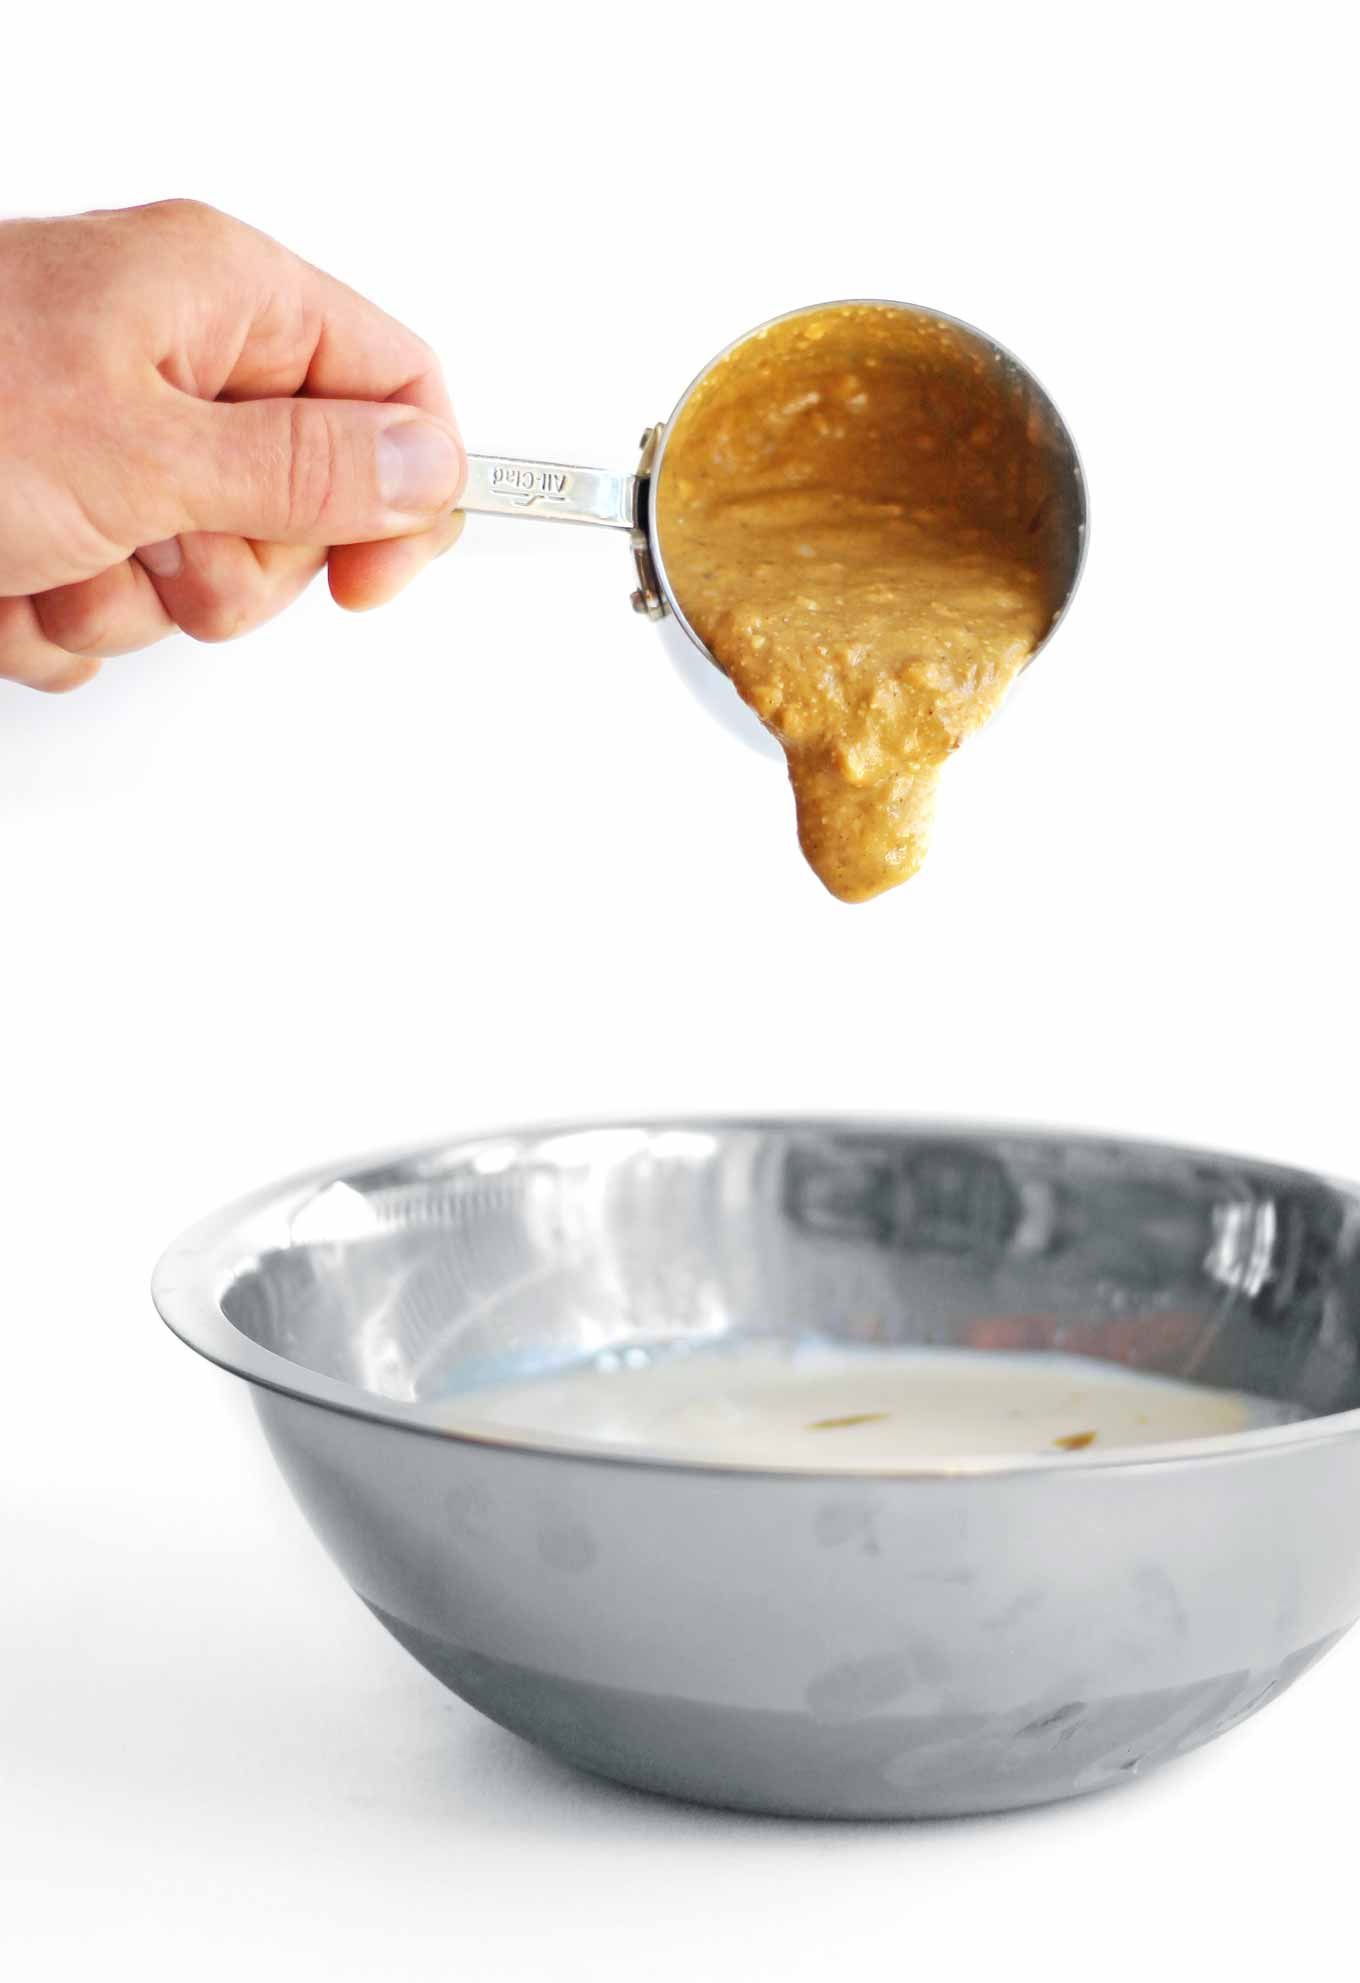 pouring peanut butter into a metal bowl